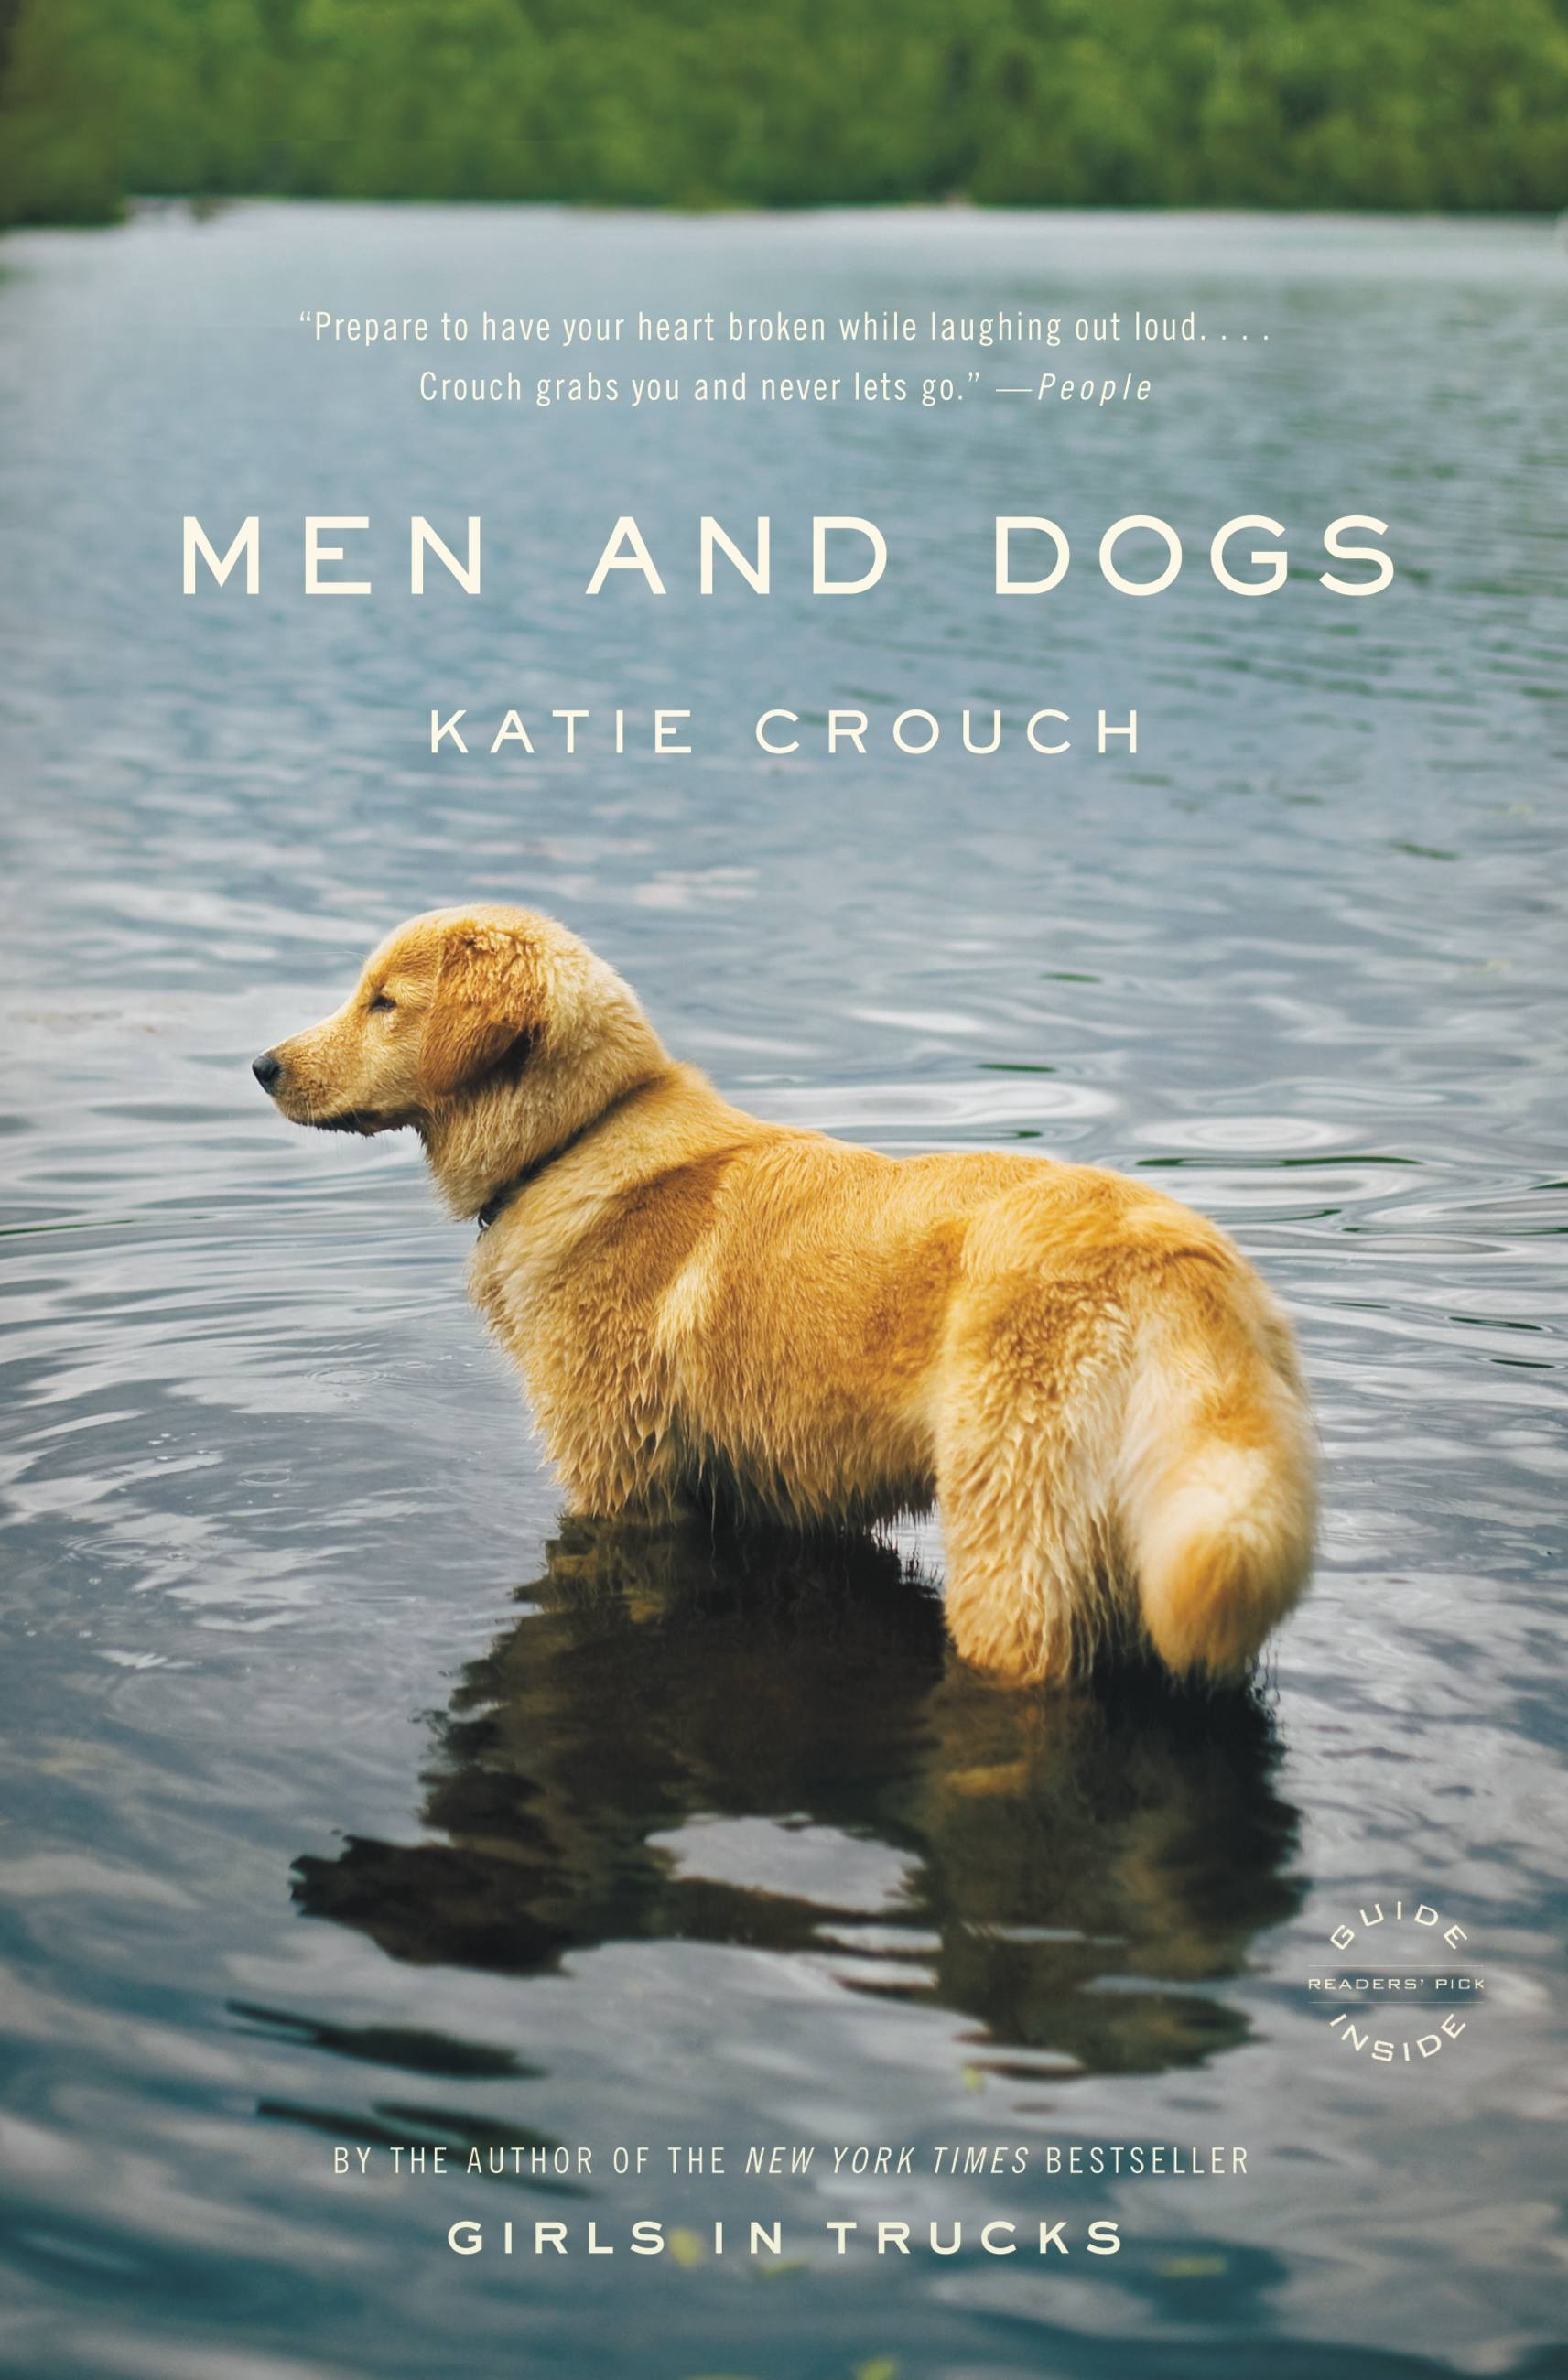 Men and Dogs